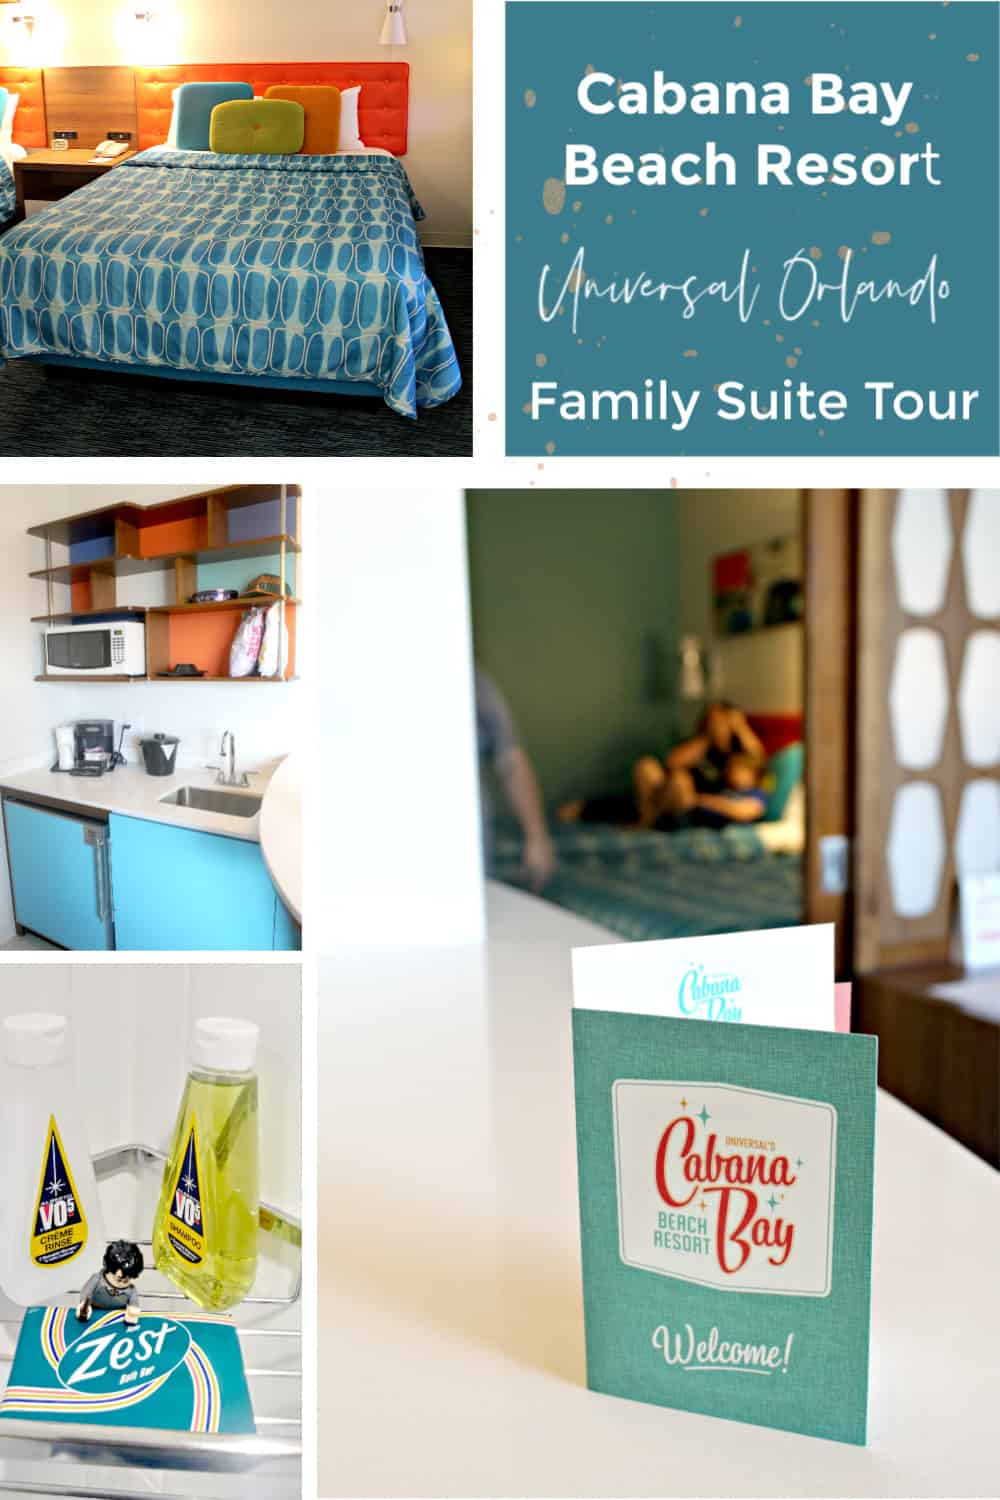 Cabana Bay Beach Resort at Universal Orlando Family Suite Room Tour - Includes photos and a walkthrough of the room.